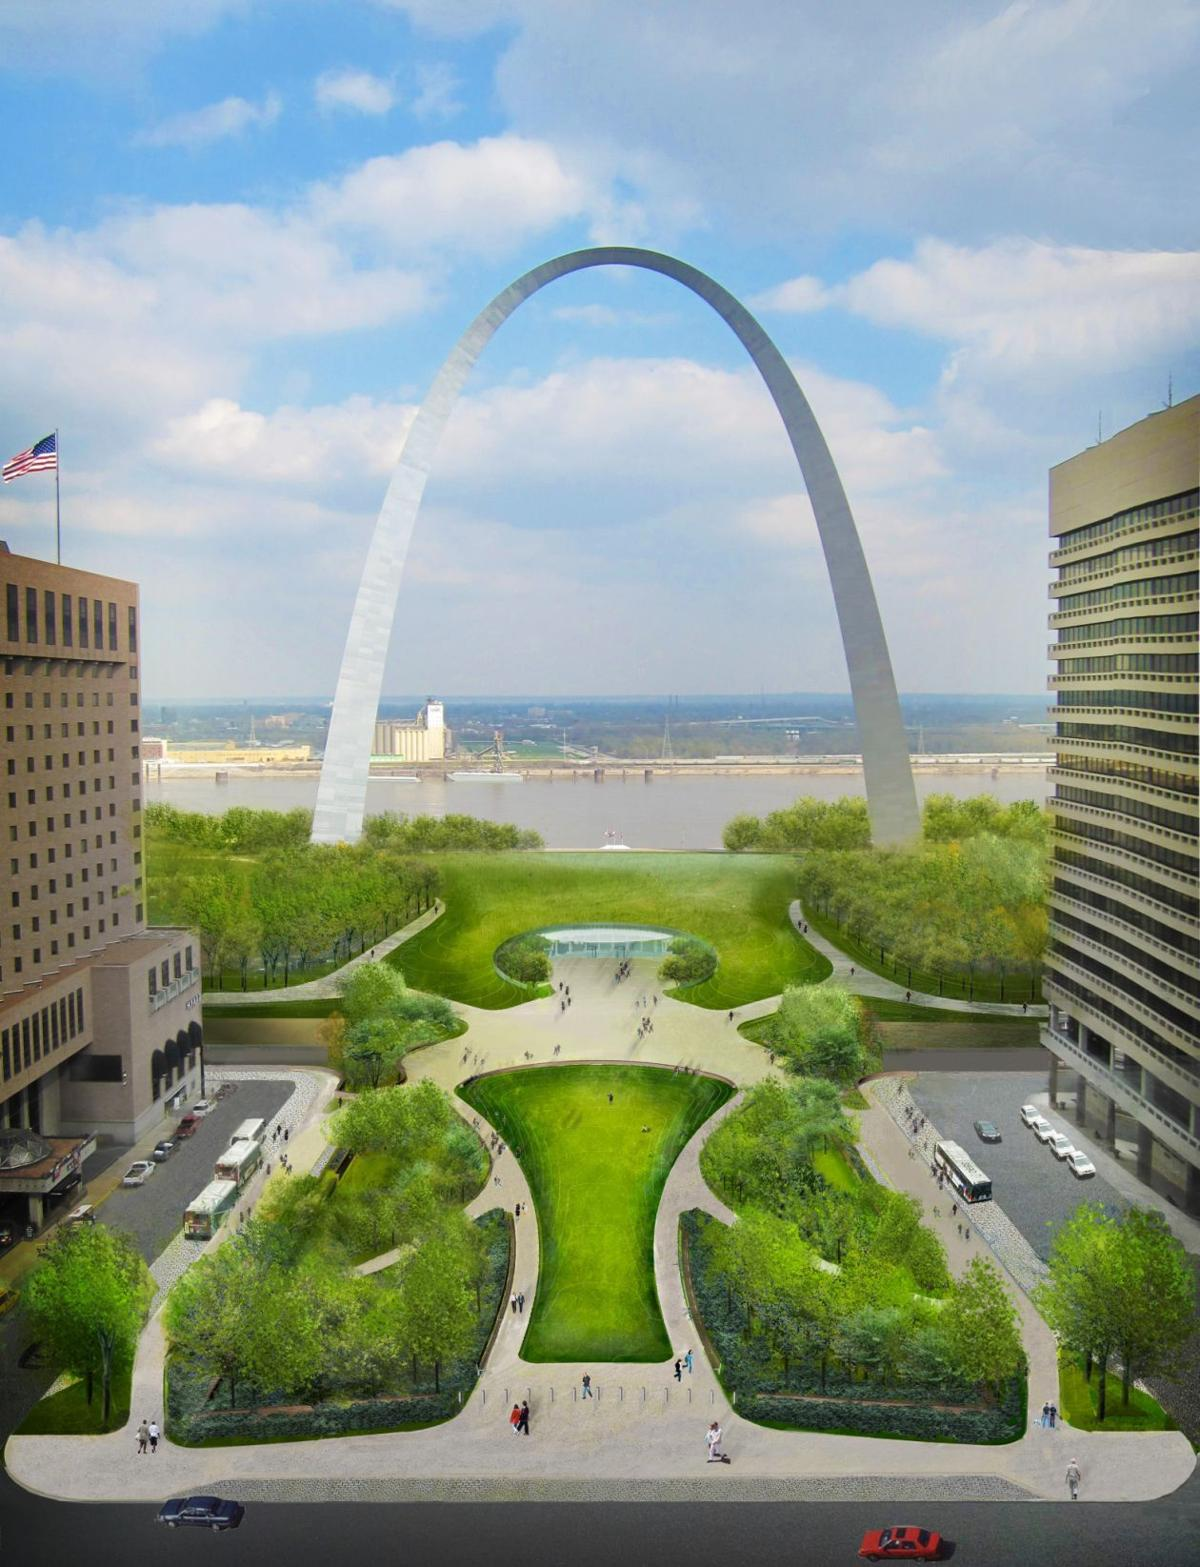 Dating for over 50 St. Louis (Saint Louis)